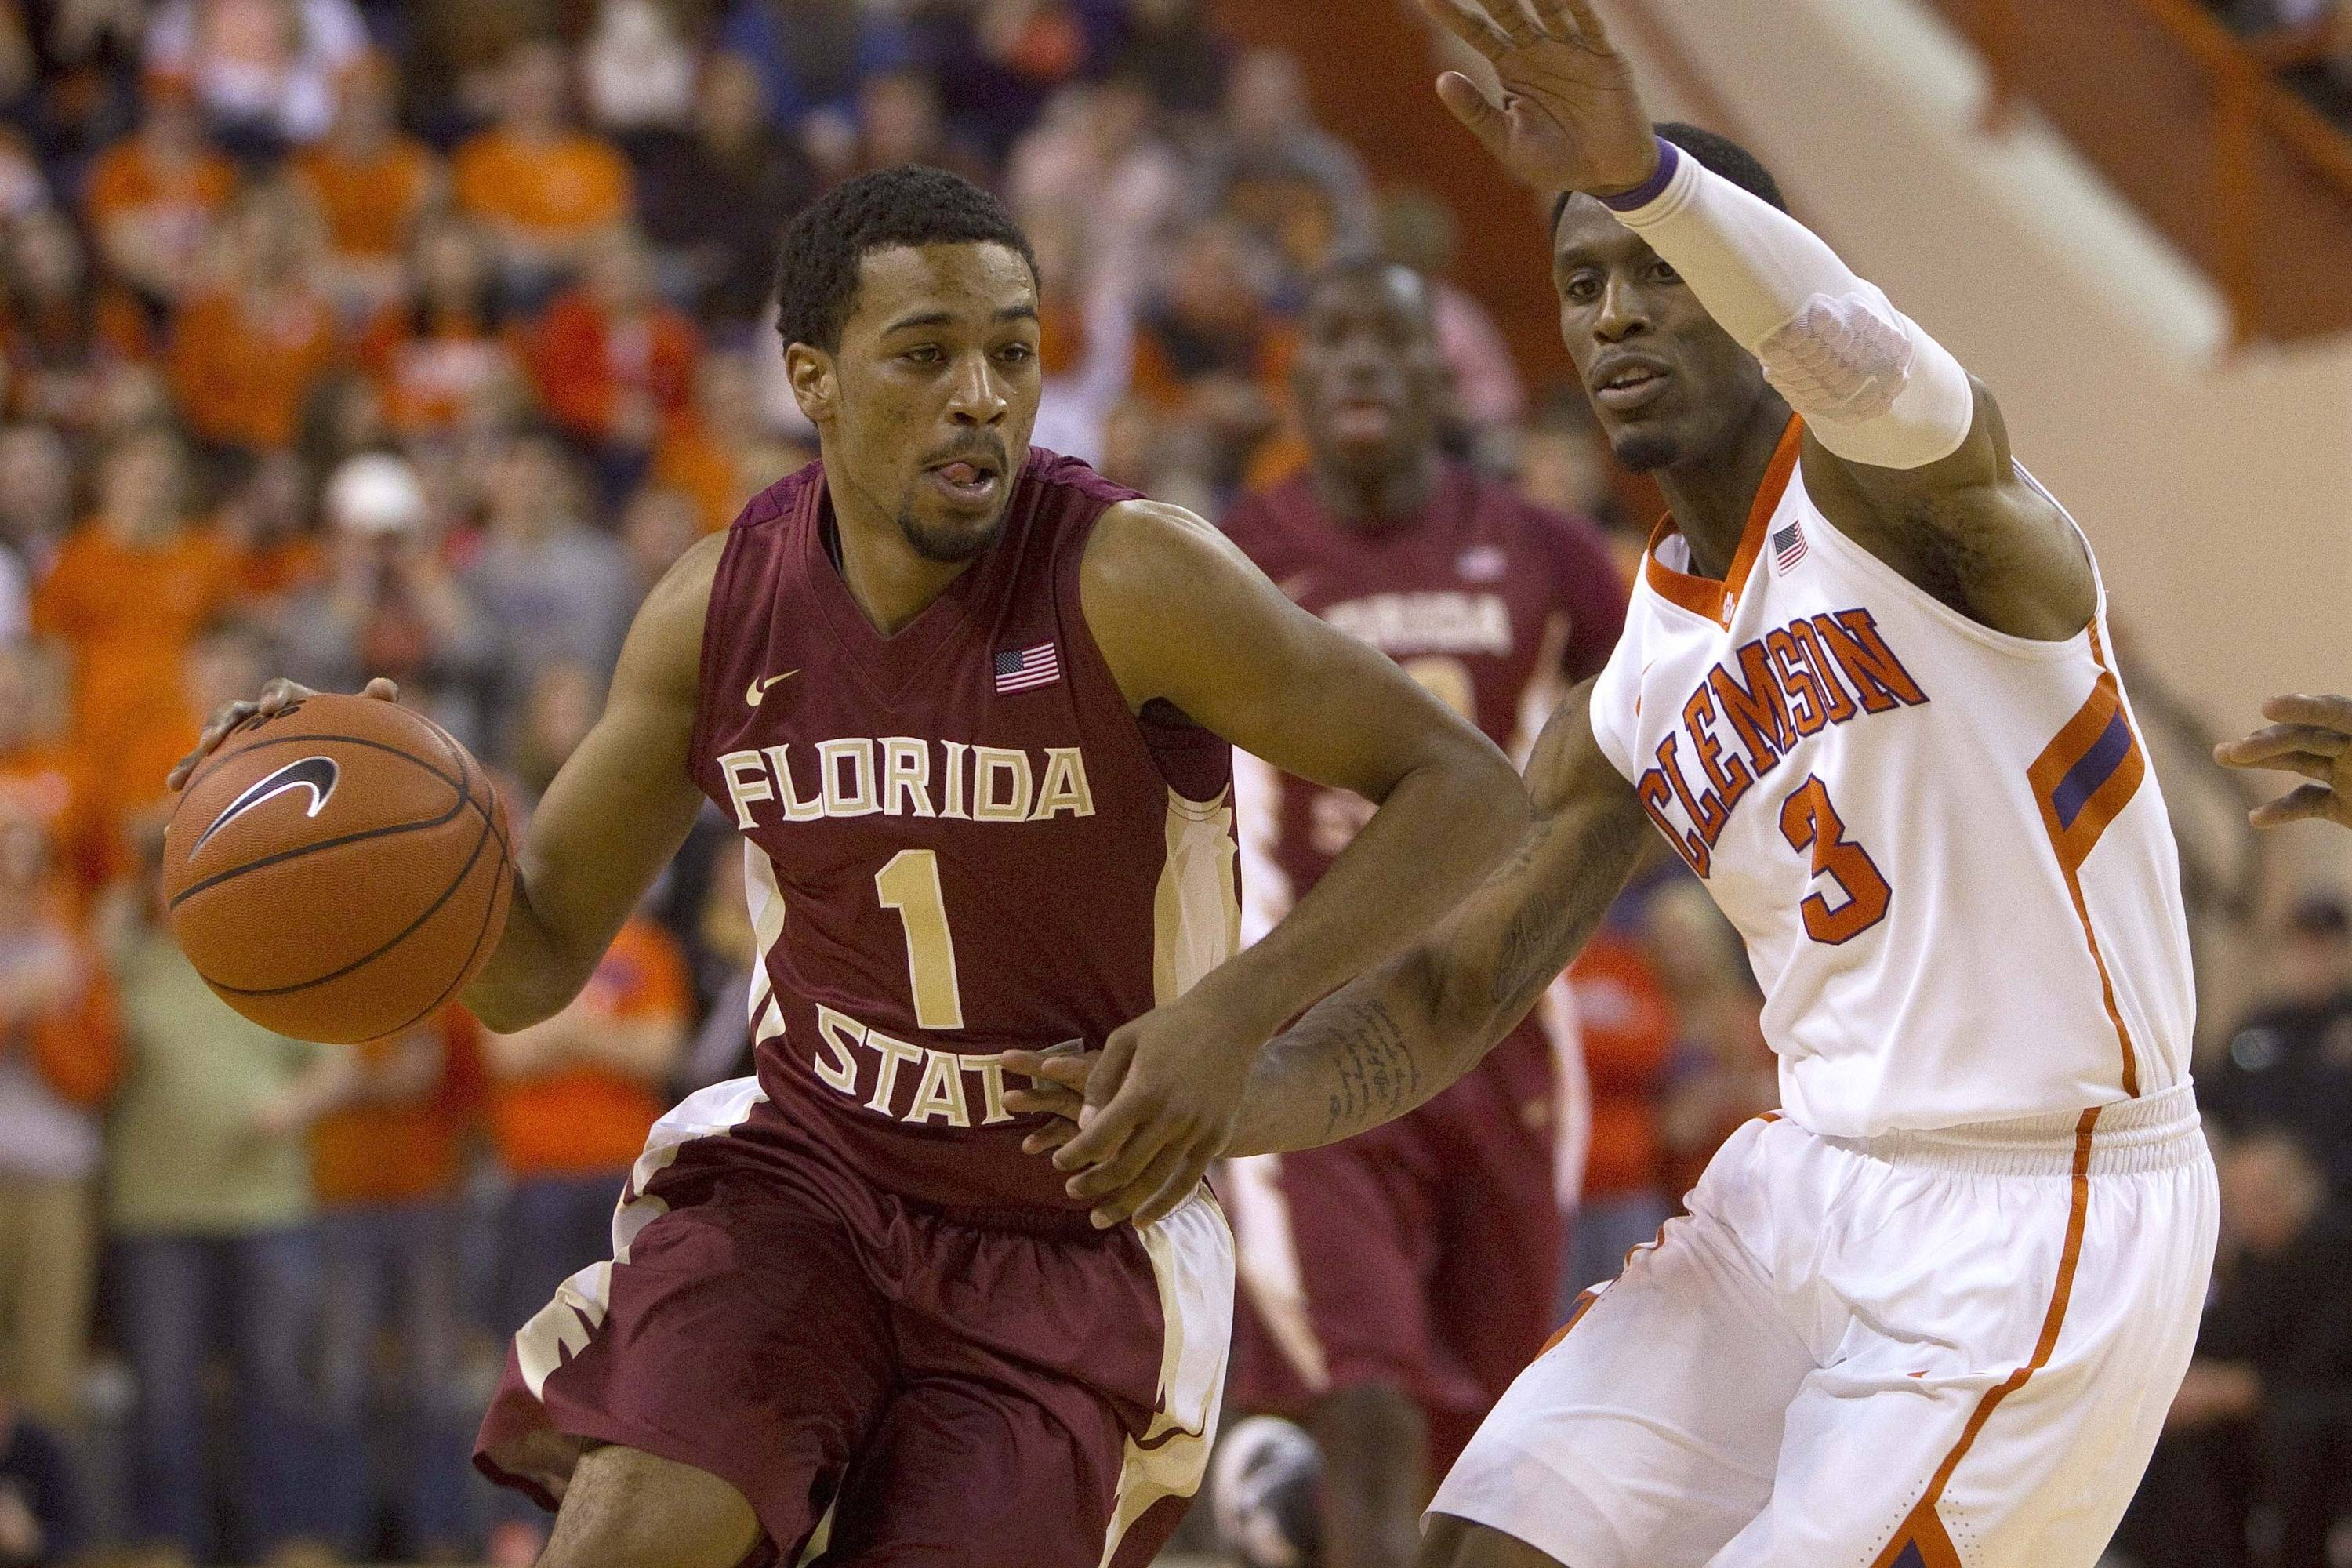 Jan 9, 2014; Clemson, SC, USA; Florida State Seminoles guard Devon Bookert (1) drives to the basket while being defended by Clemson Tigers guard Adonis Filer (3) during the first half at J.C. Littlejohn Coliseum. Mandatory Credit: Joshua S. Kelly-USA TODAY Sports